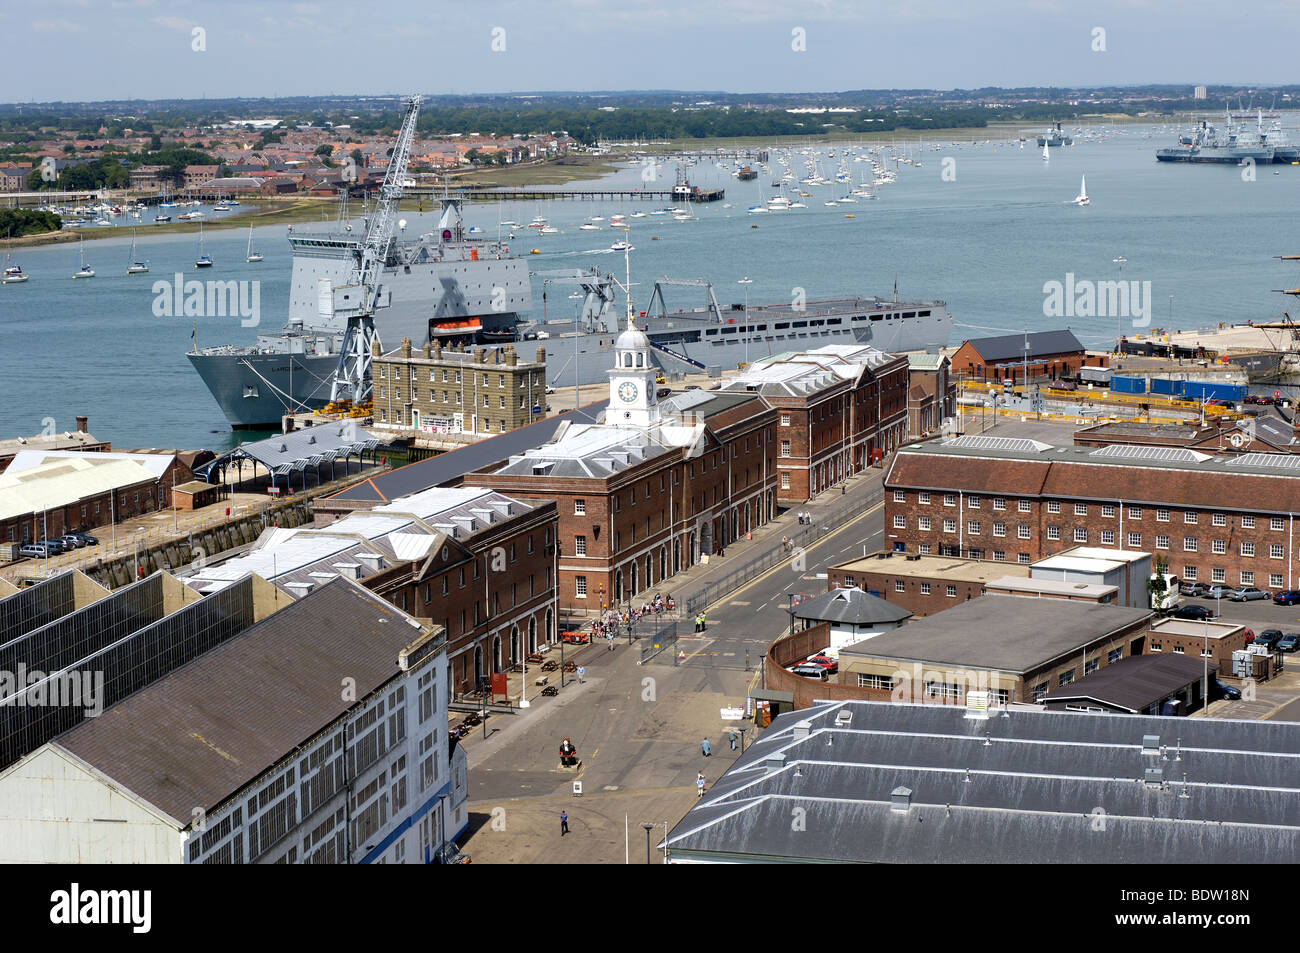 Aerial view of Portsmouth Dockyard including harbour, Portsmouth, Hampshire, England, UK Stock Photo